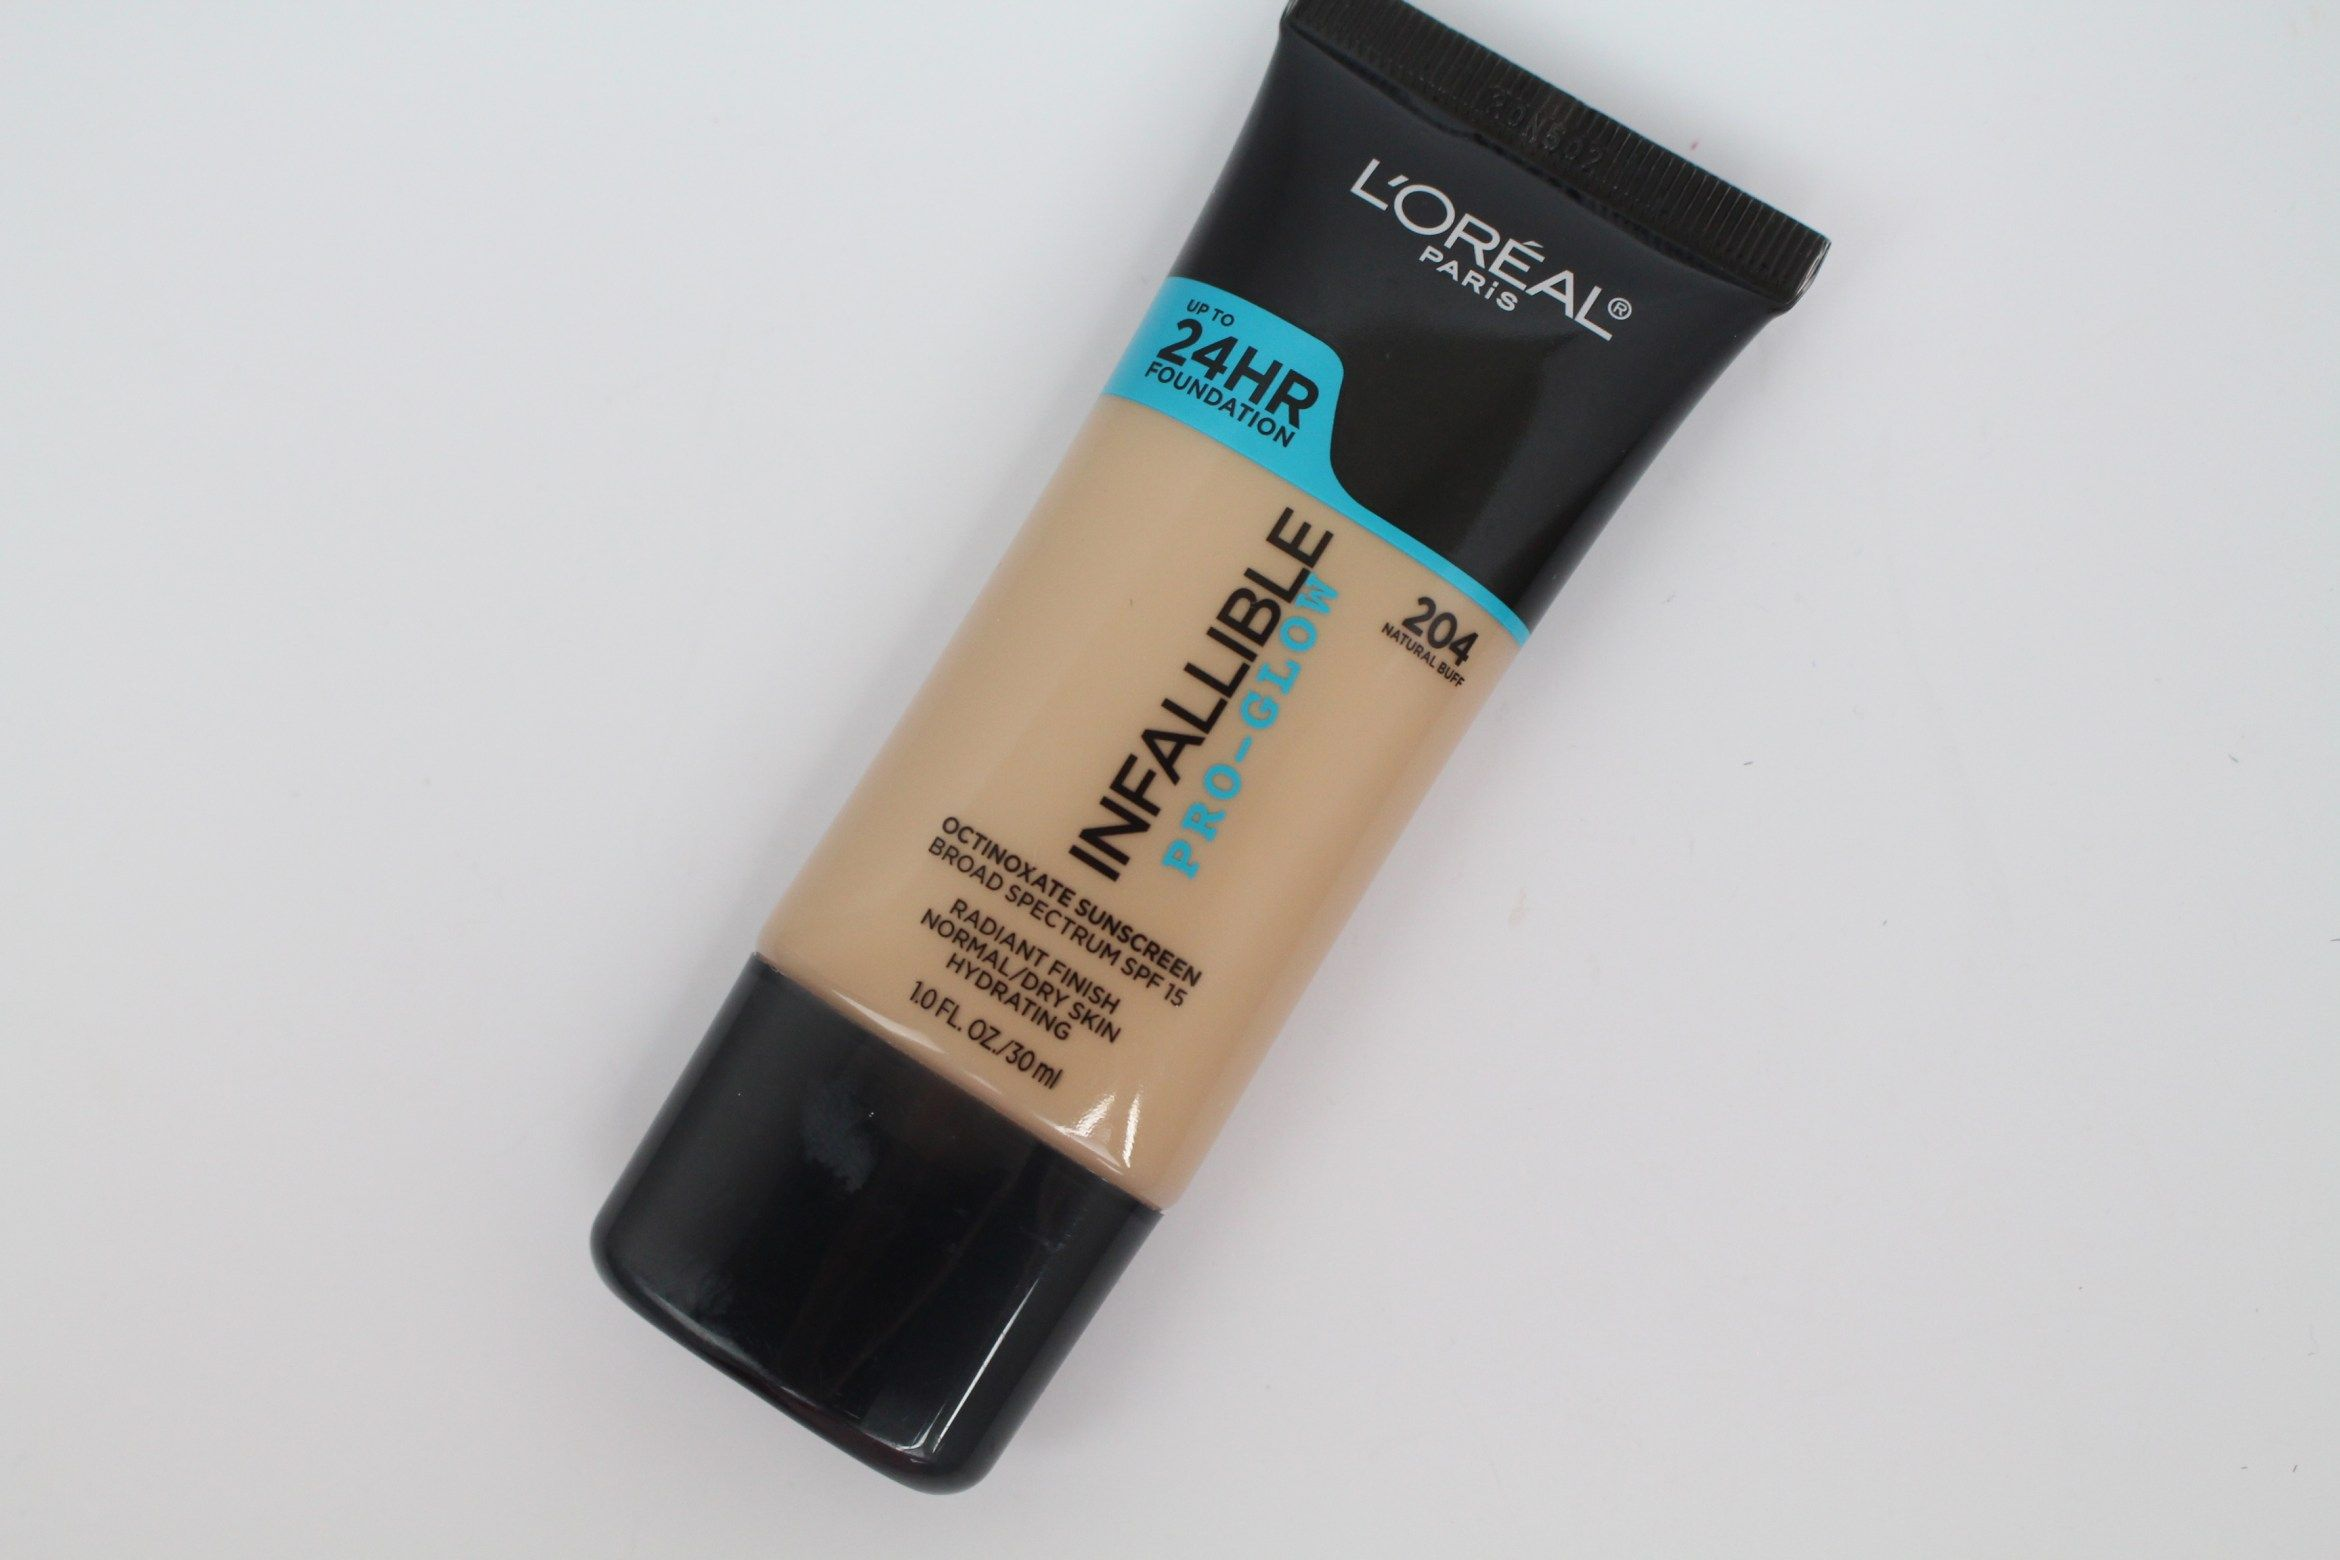 L'Oreal Infallible Face ProGlow Foundation Loreal paris